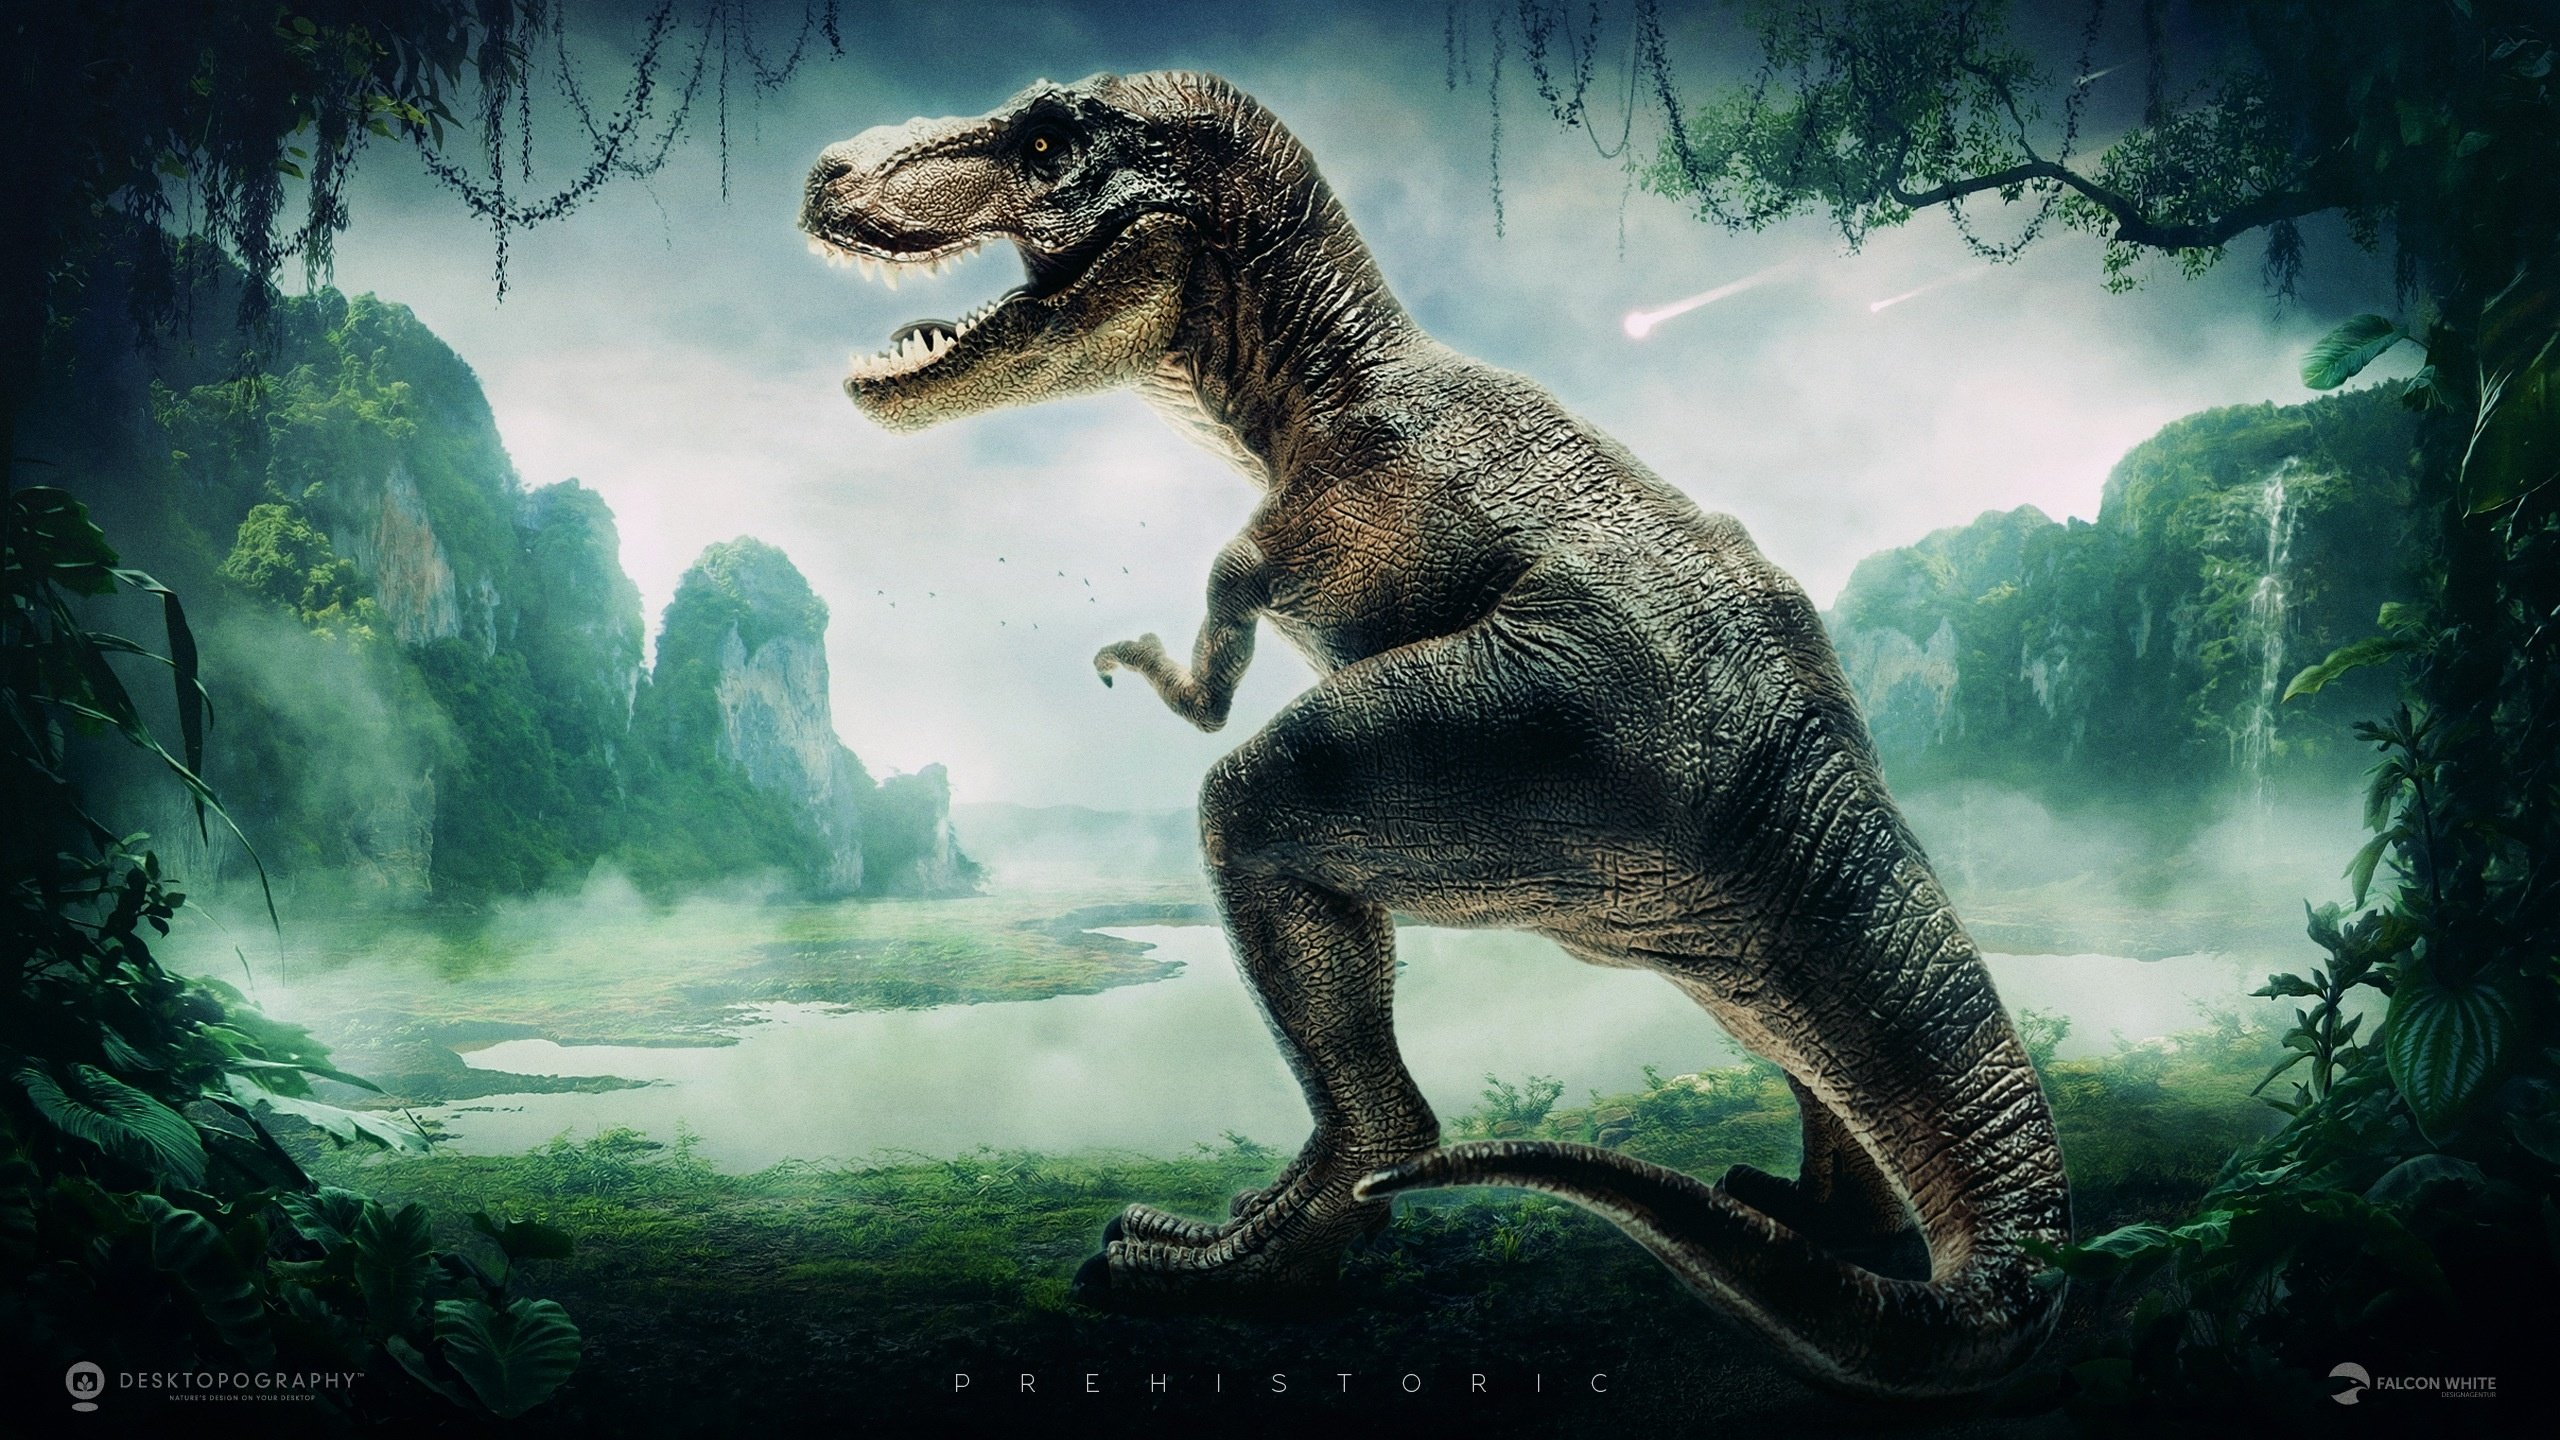 Free download Dinosaur wallpaper ID:73891 hd 2560x1440 for PC